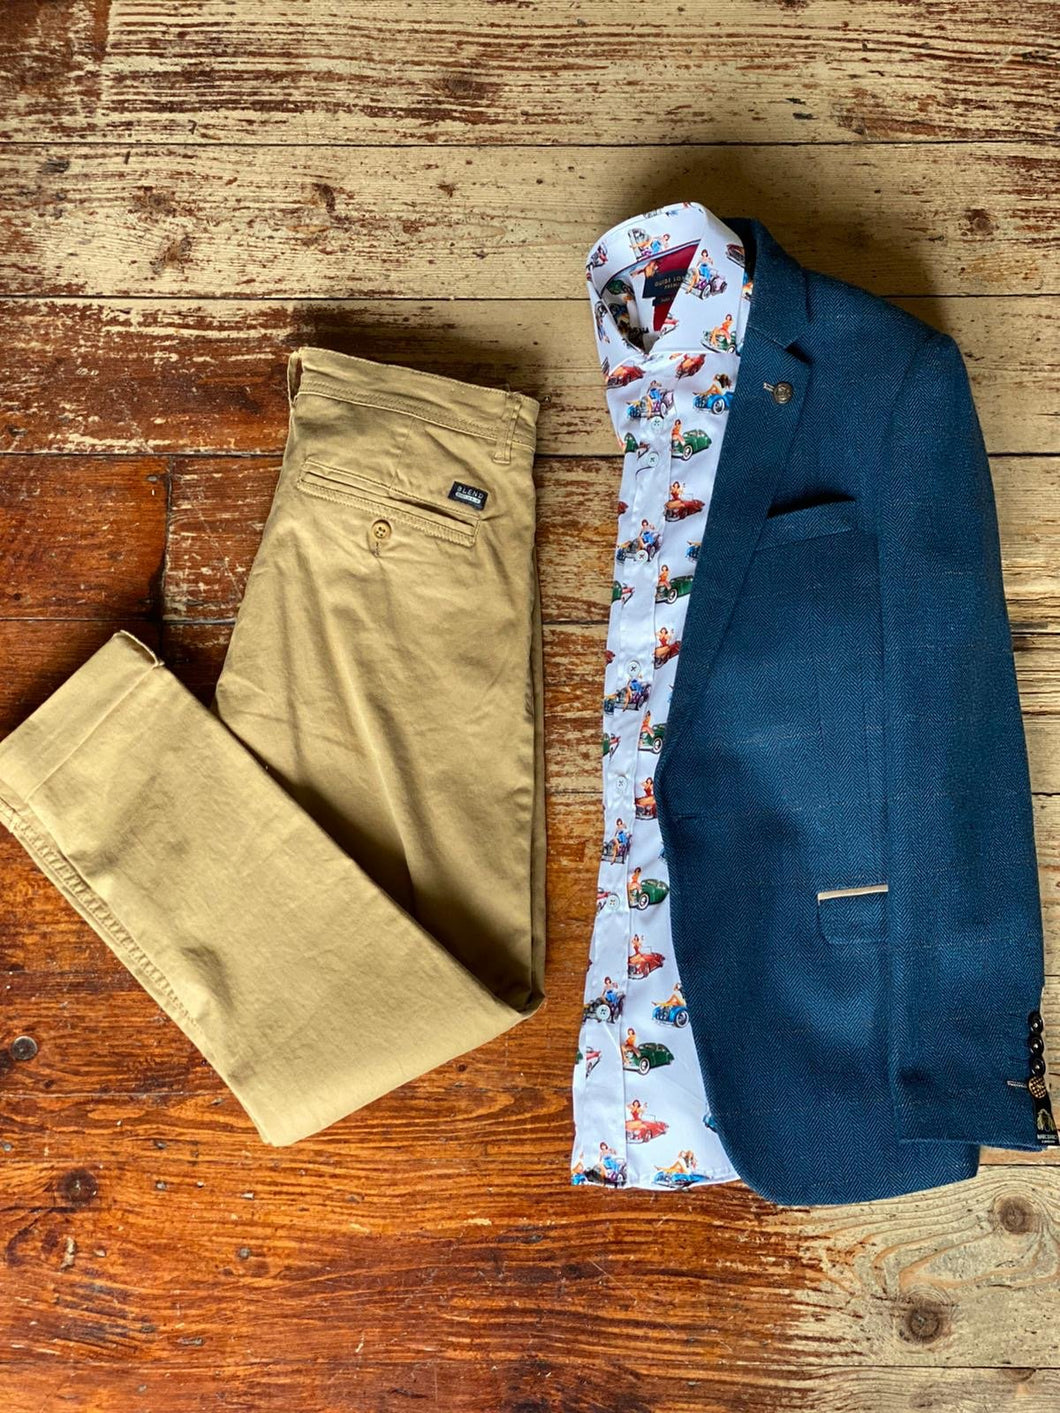 Dion and Chino Look marc-darcy-dion-tweed-herringbone-blazer-with-paisley-lining-blue / claudio-lugli-ladies-and-gentlemen-shirt / blend-sand-brown-chinos